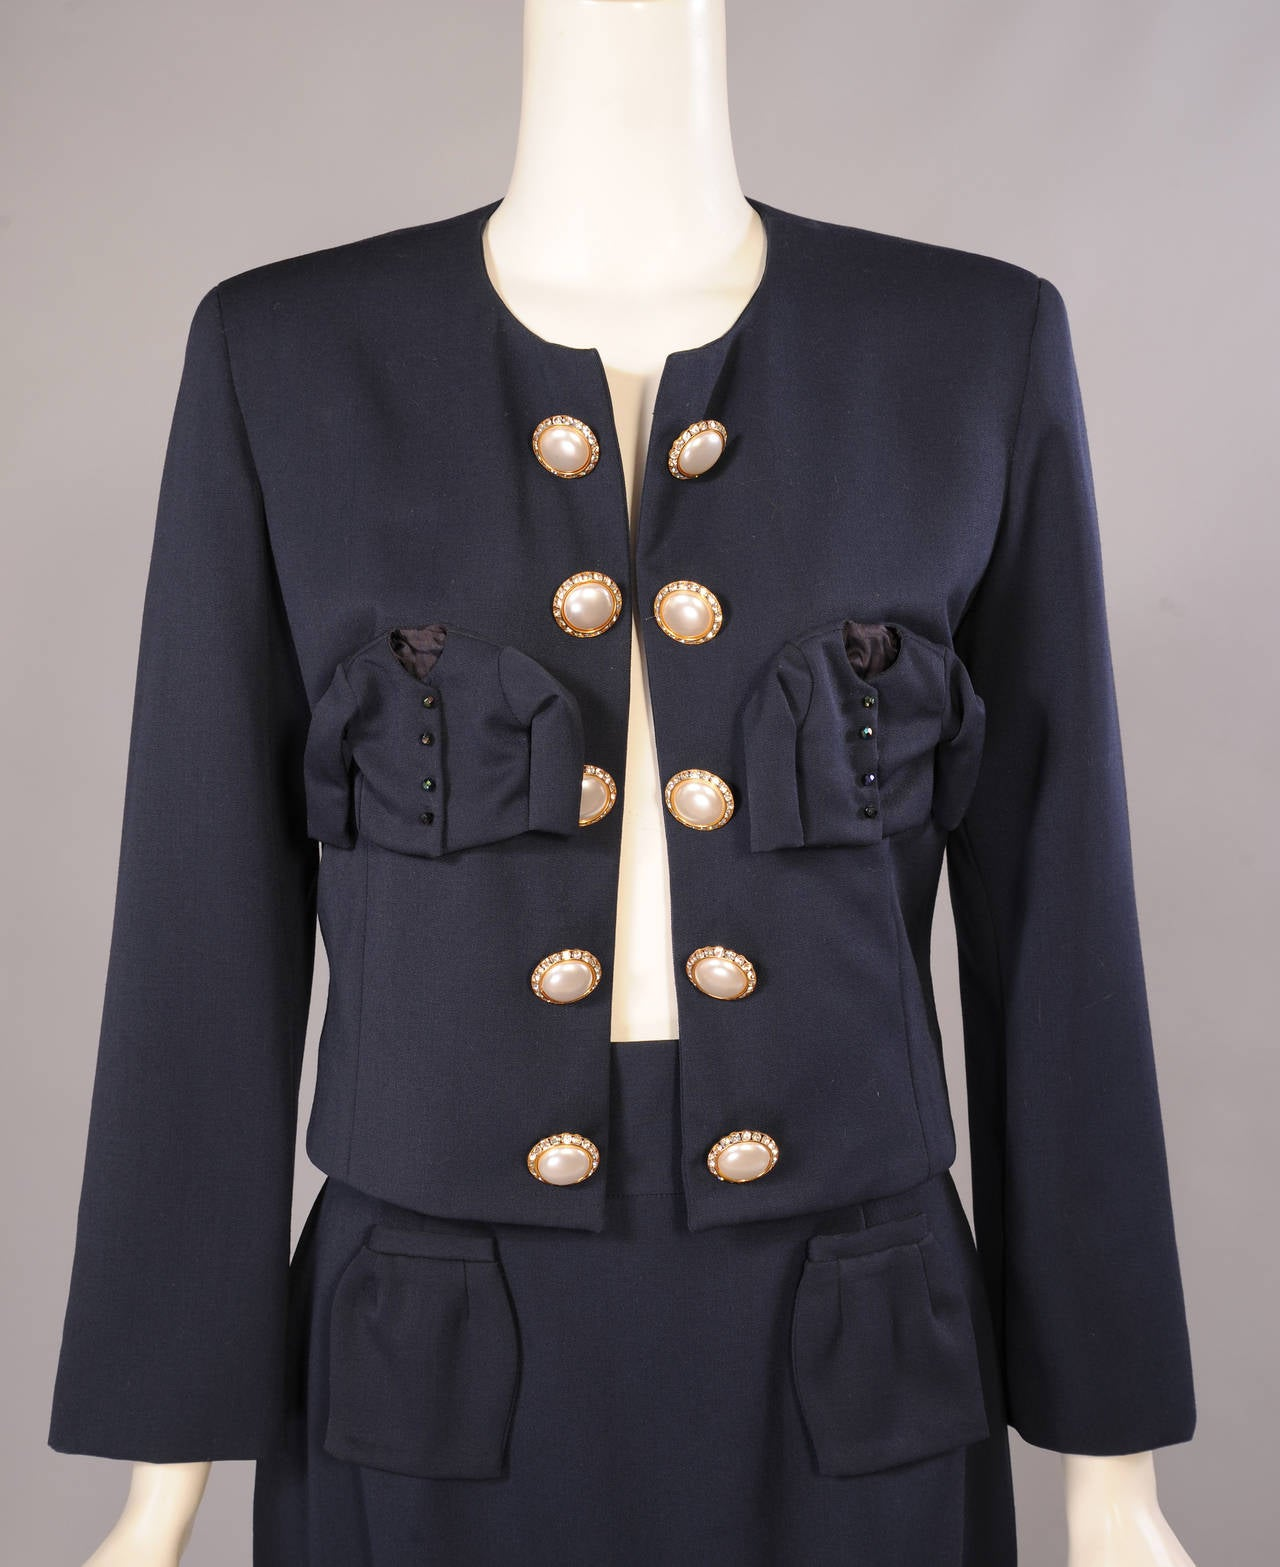 Black Iconic & Ironic Moschino Couture Suit, Chanel Inspired Suit Pockets For Sale